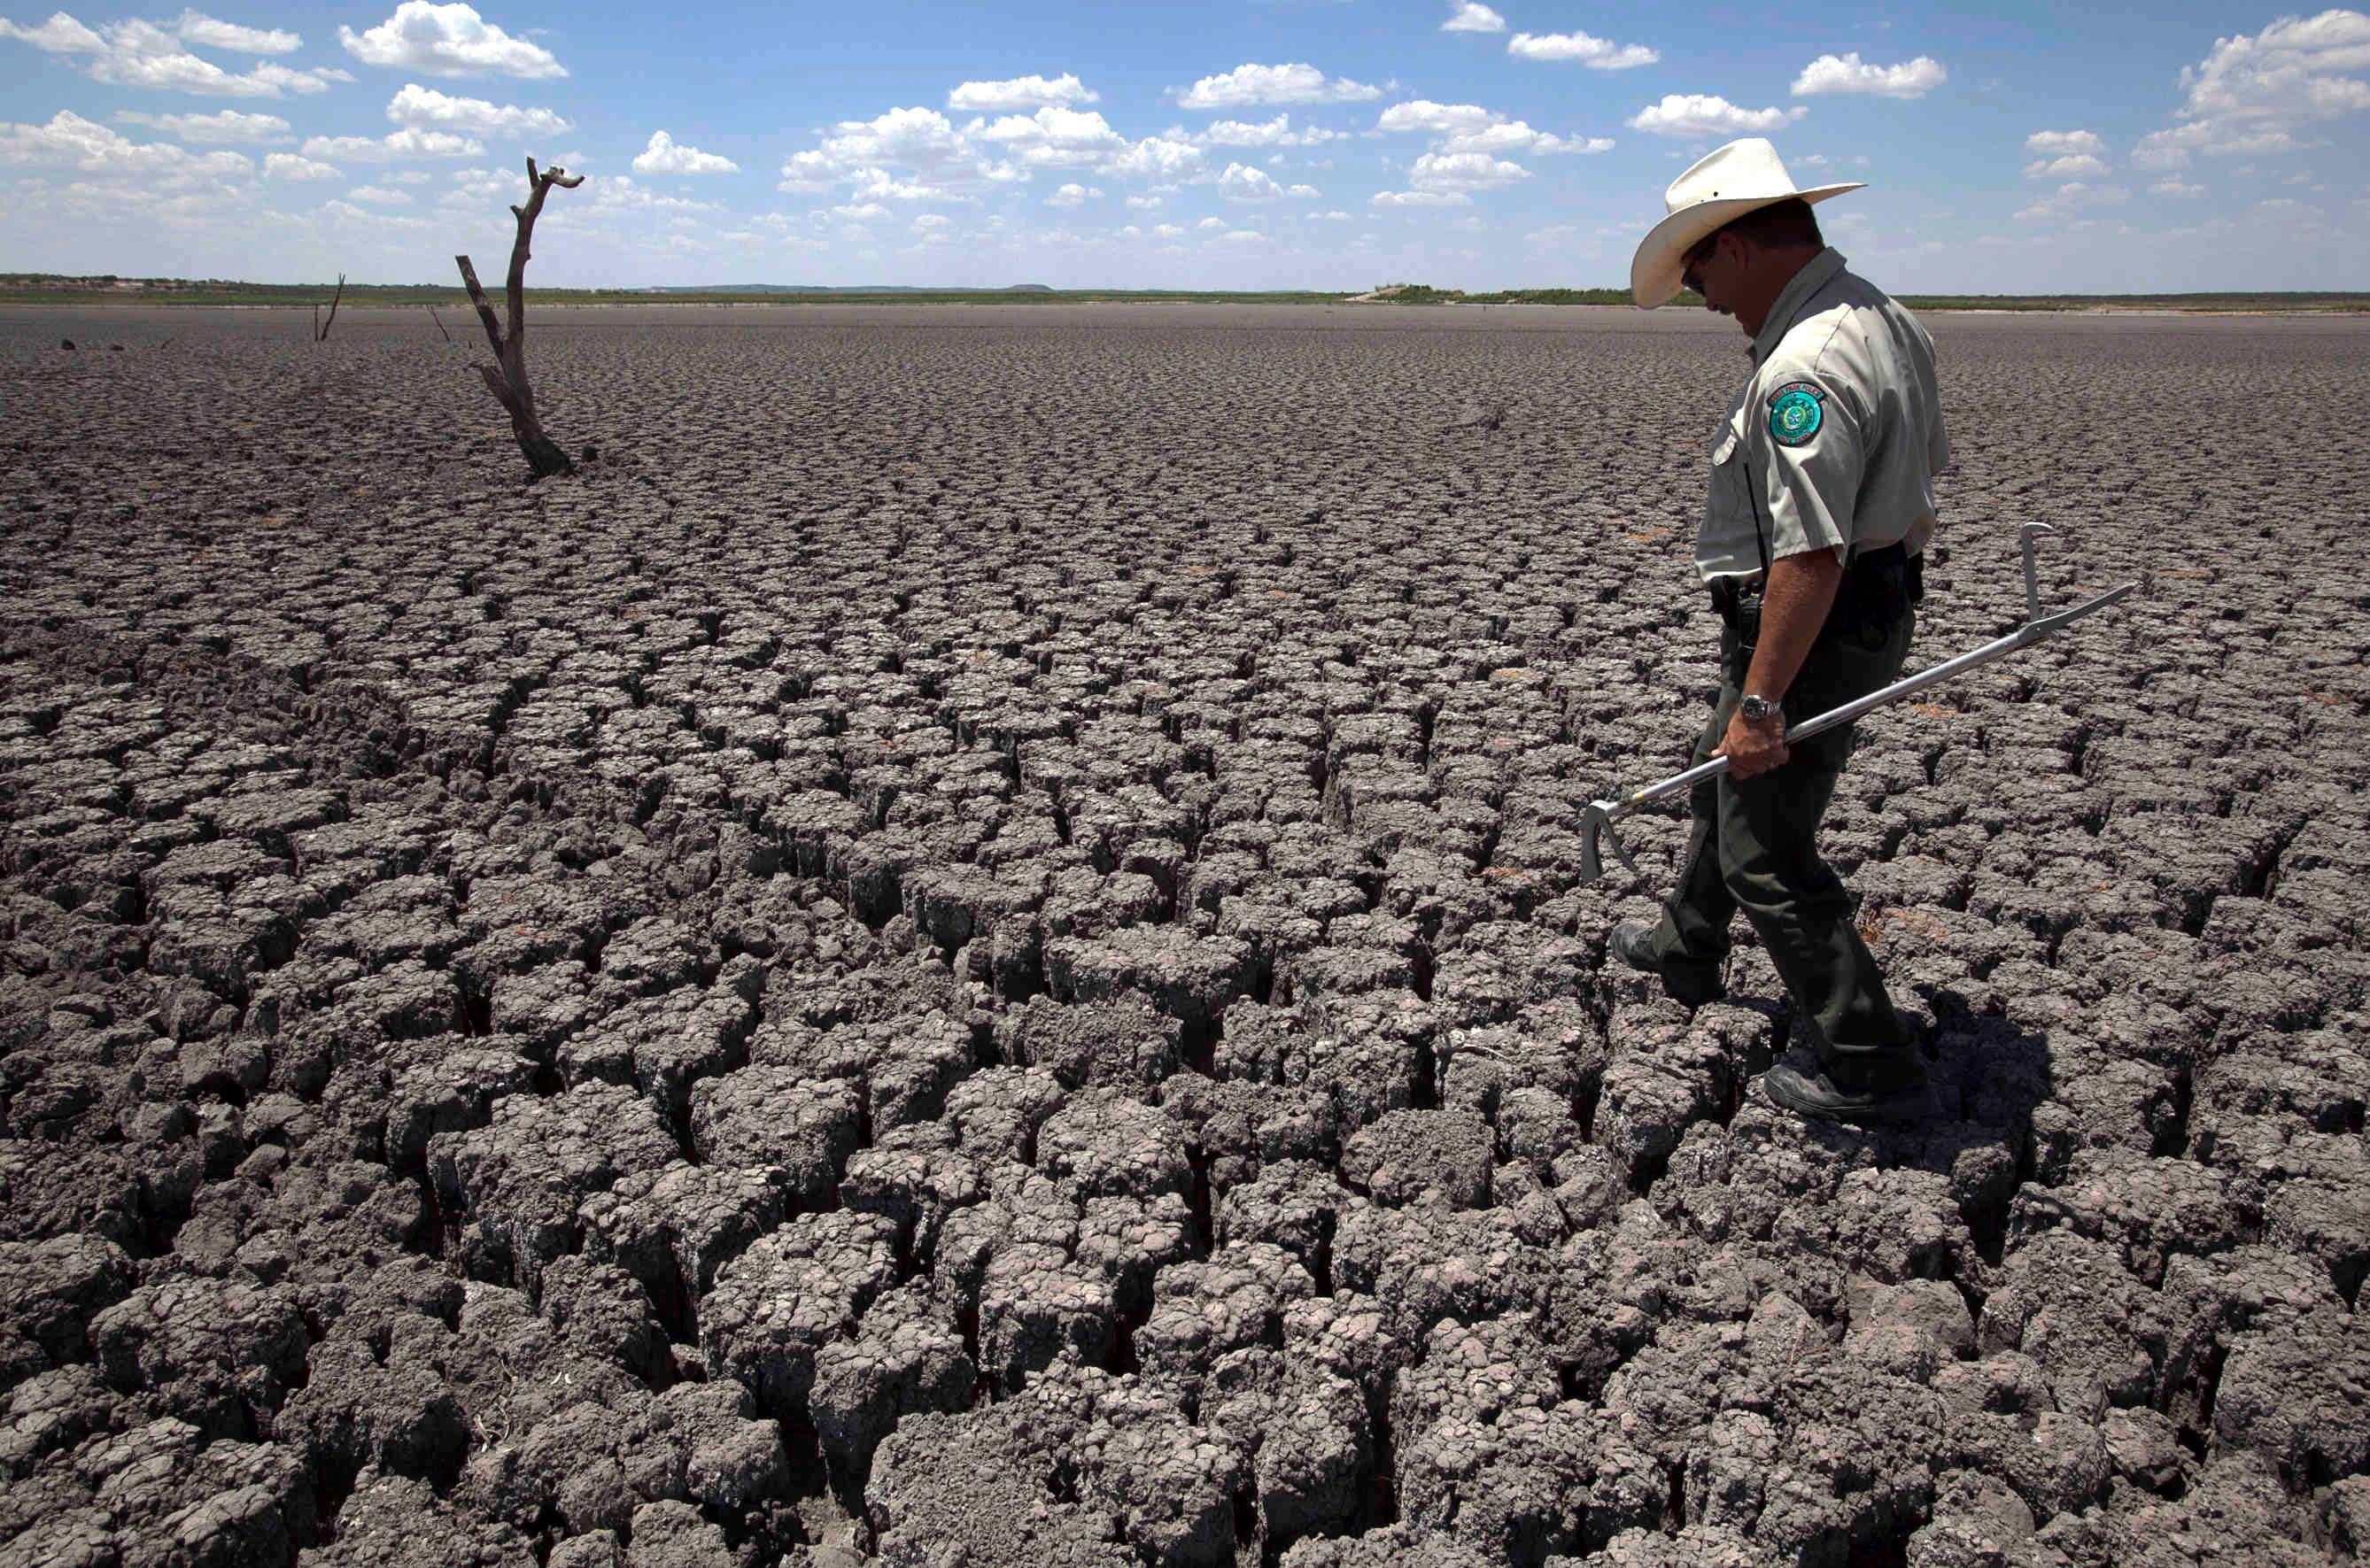 Drought: Worst western megadrought in 1,200 years is here, new study says